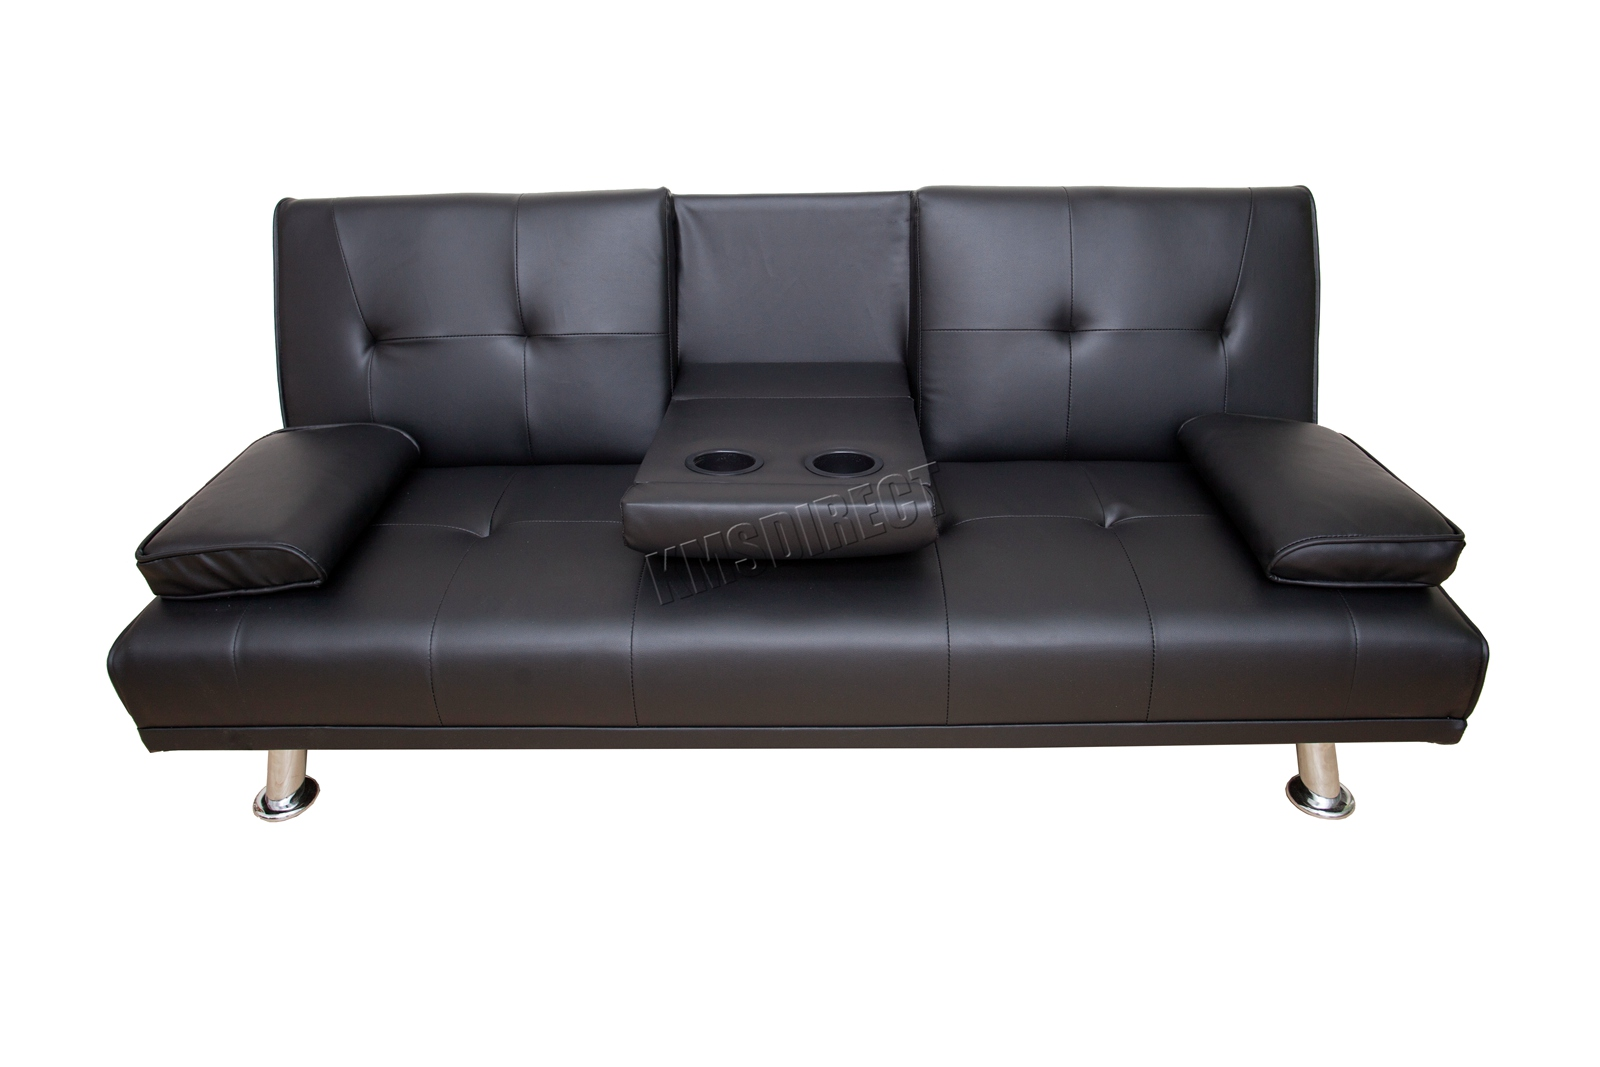 WestWood-Faux-Leather-Manhattan-Sofa-Bed-recliner-3-Seater-Modern-Luxury-Design thumbnail 17